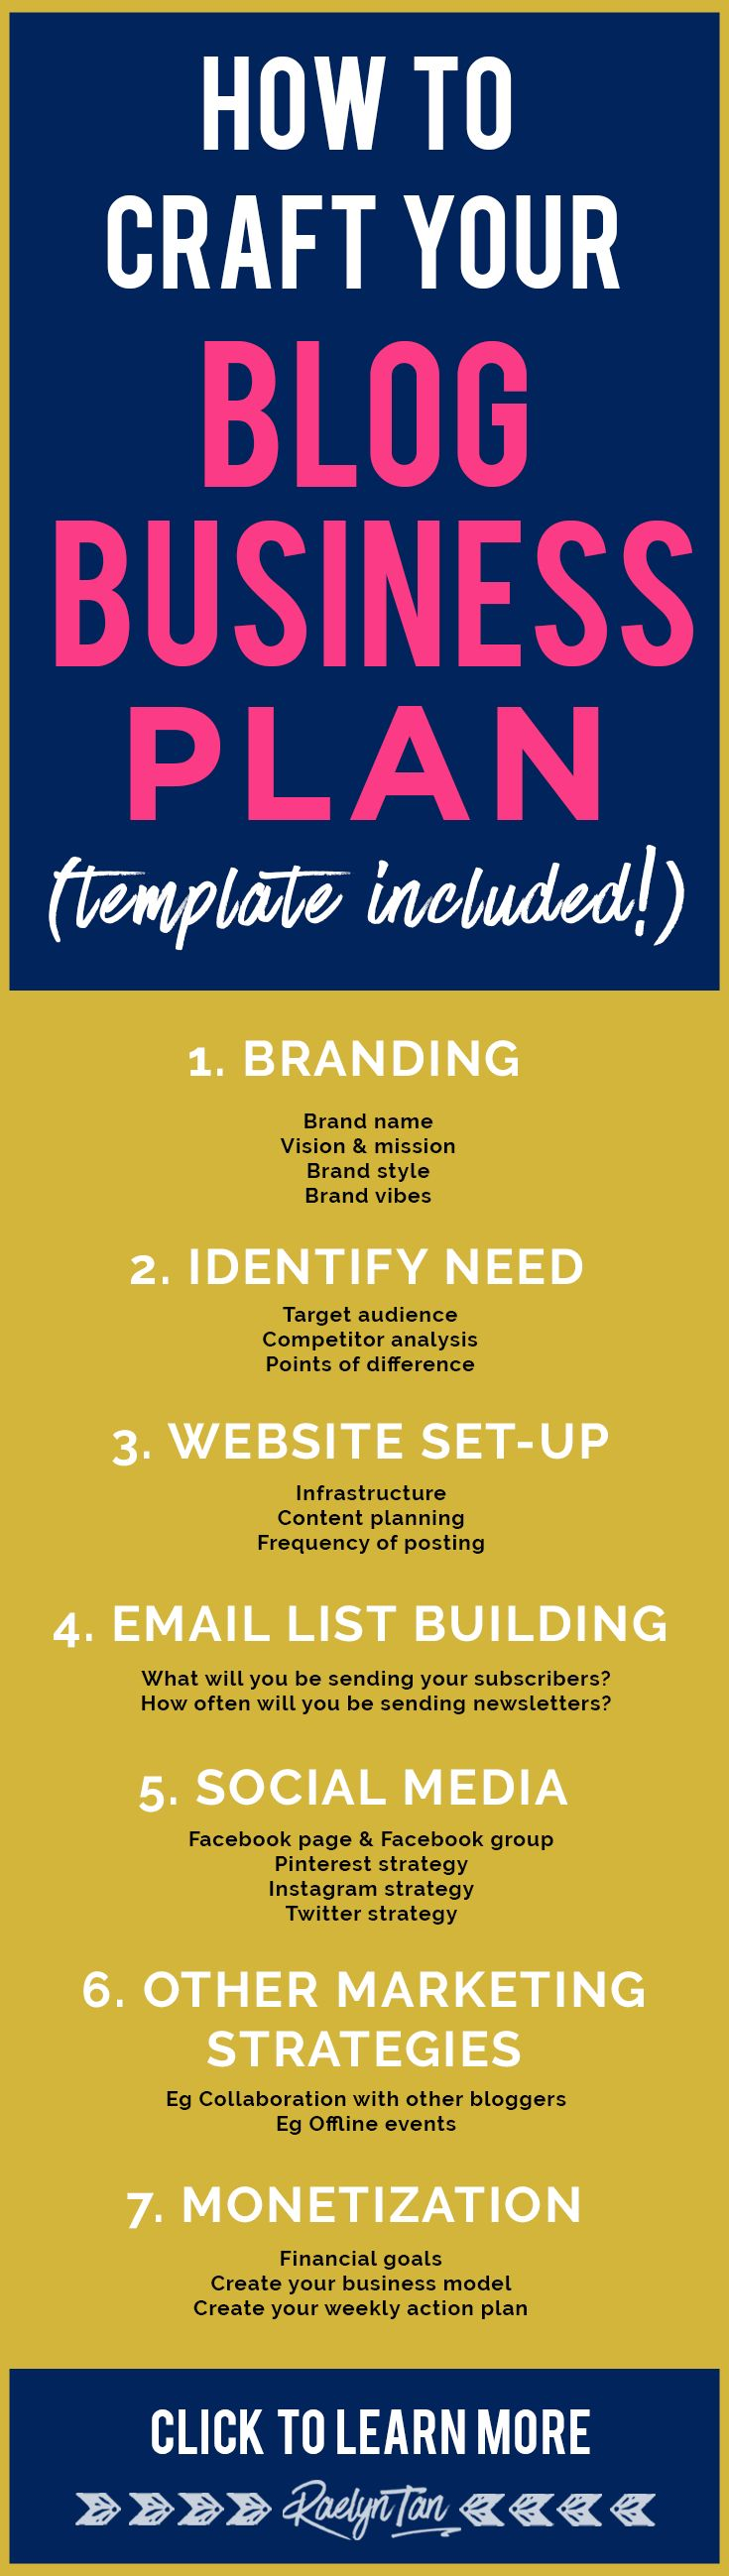 350 best raelyn tans blog images on pinterest inbound marketing how to craft your blog business plan template included fandeluxe Image collections